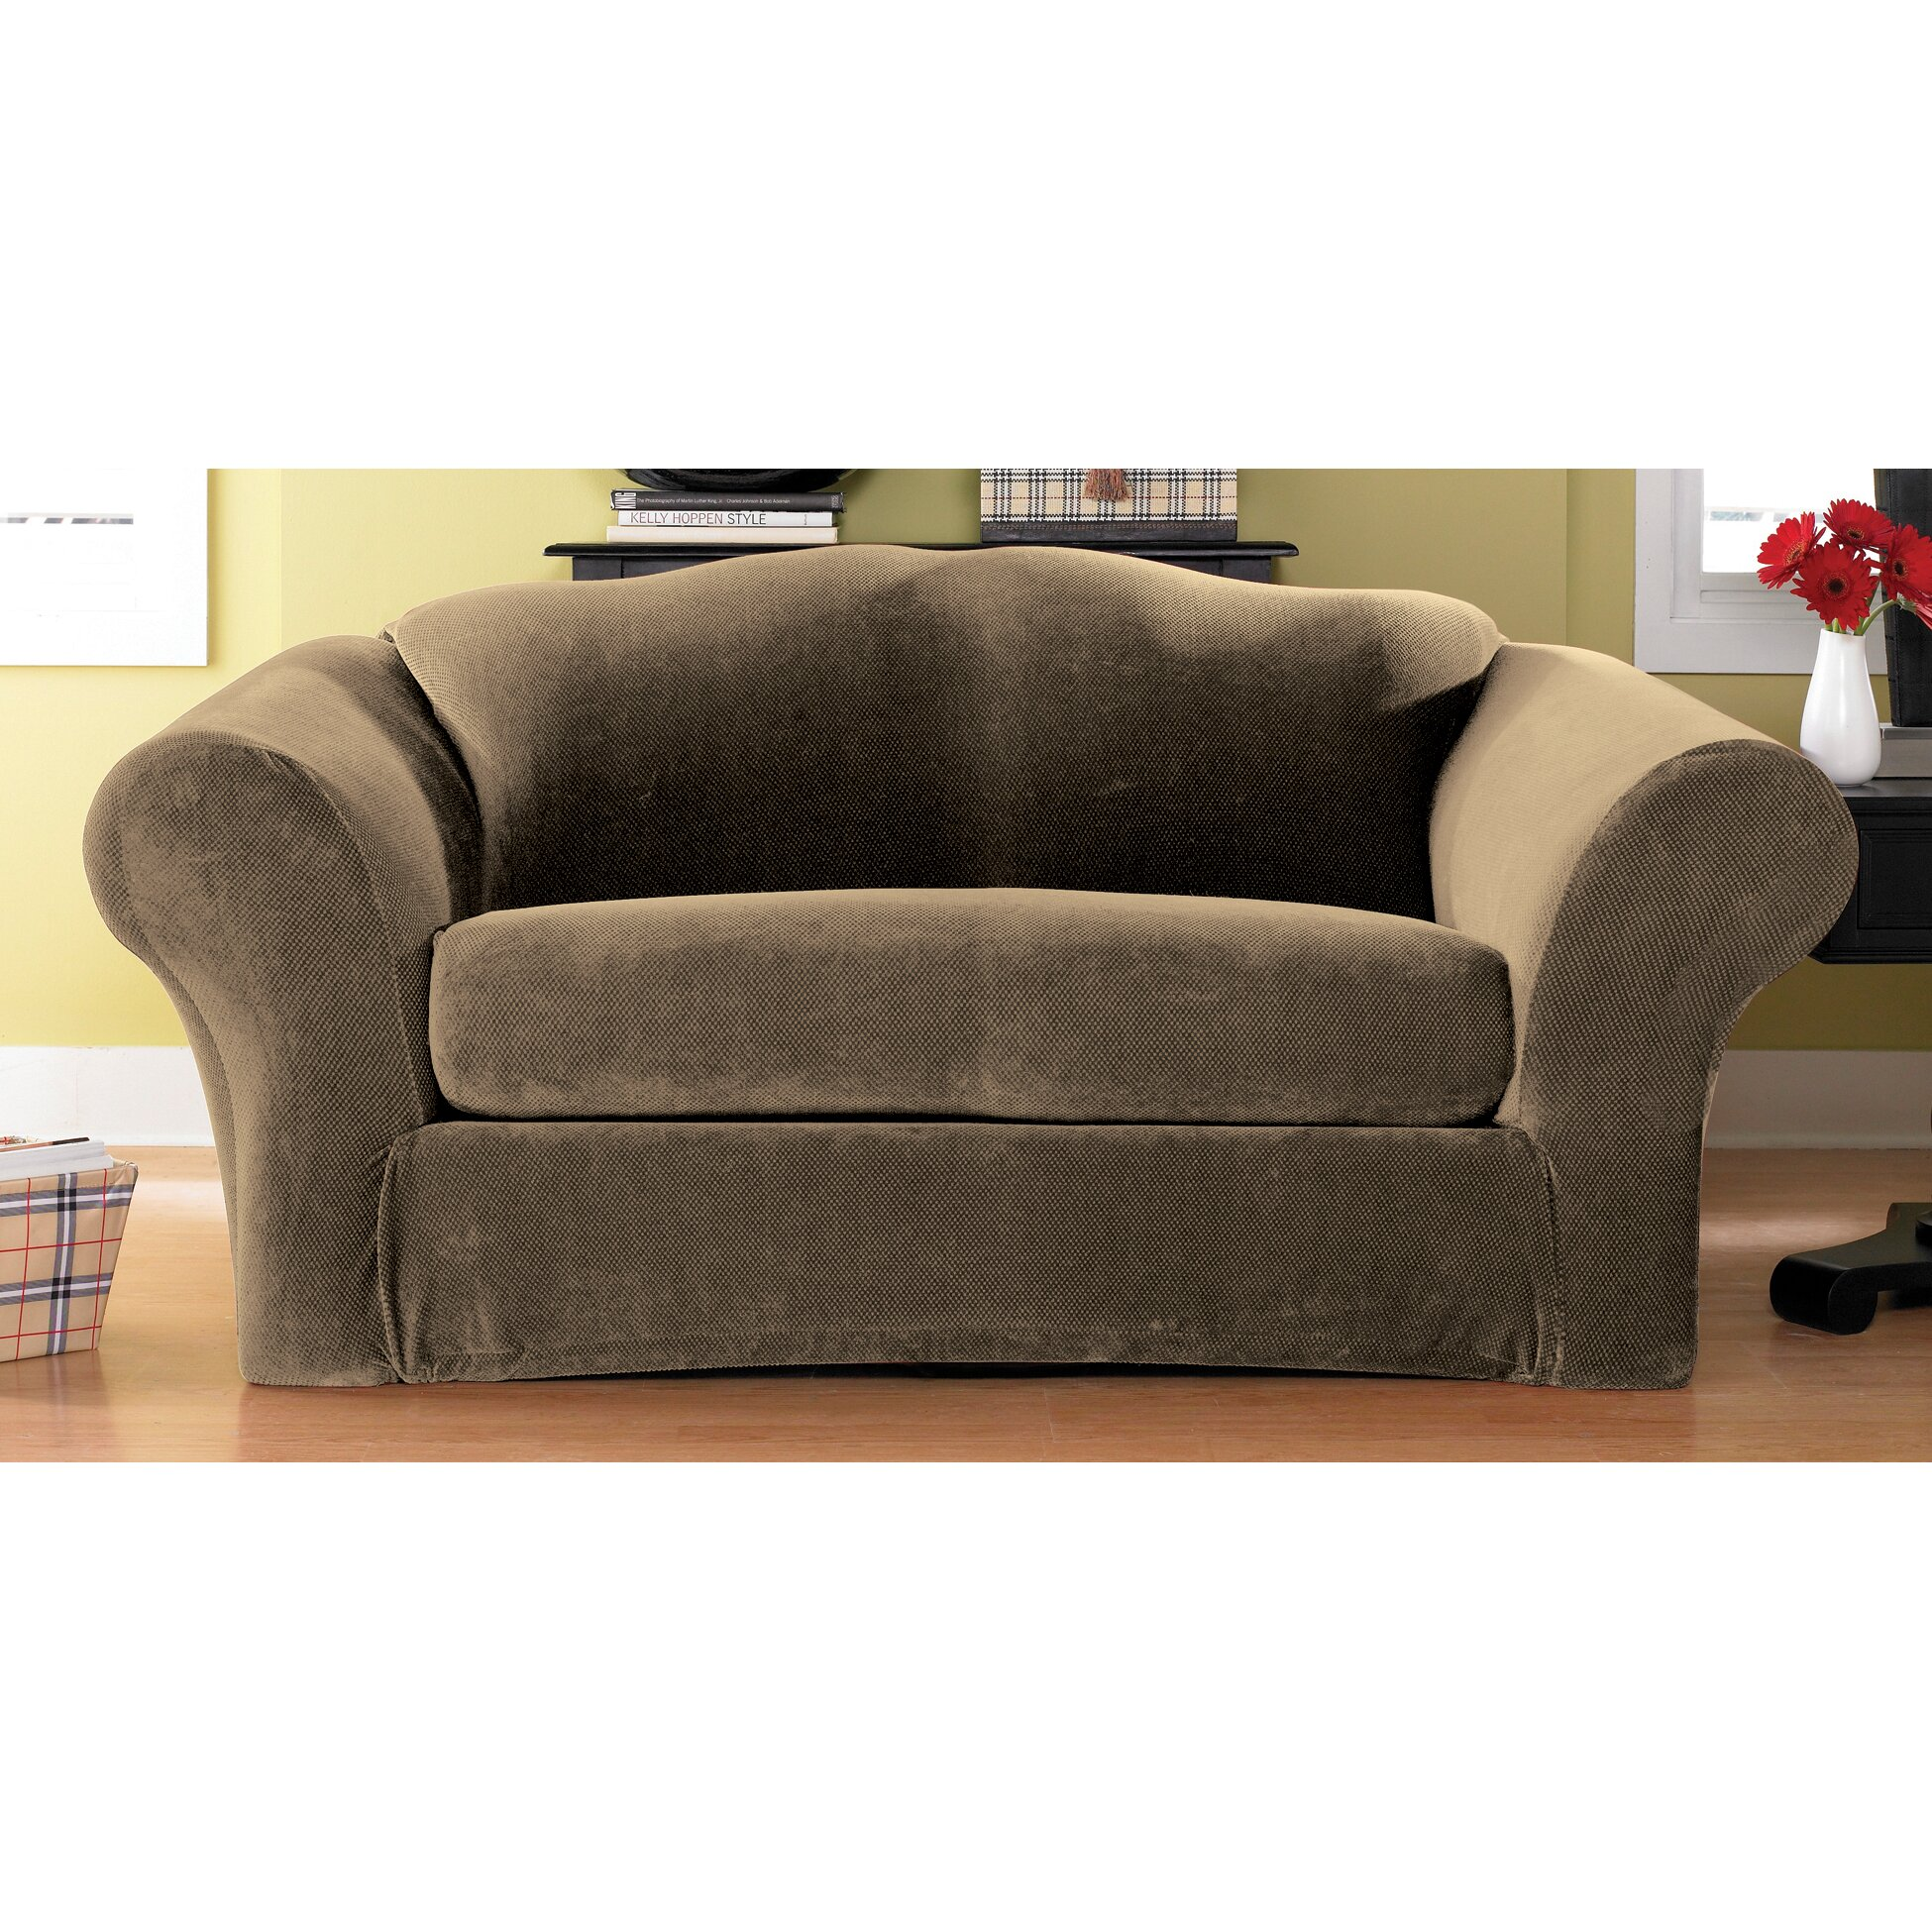 Sure Fit Stretch Pique Separate Seat Loveseat Slipcover Reviews Wayfair: loveseat slipcover